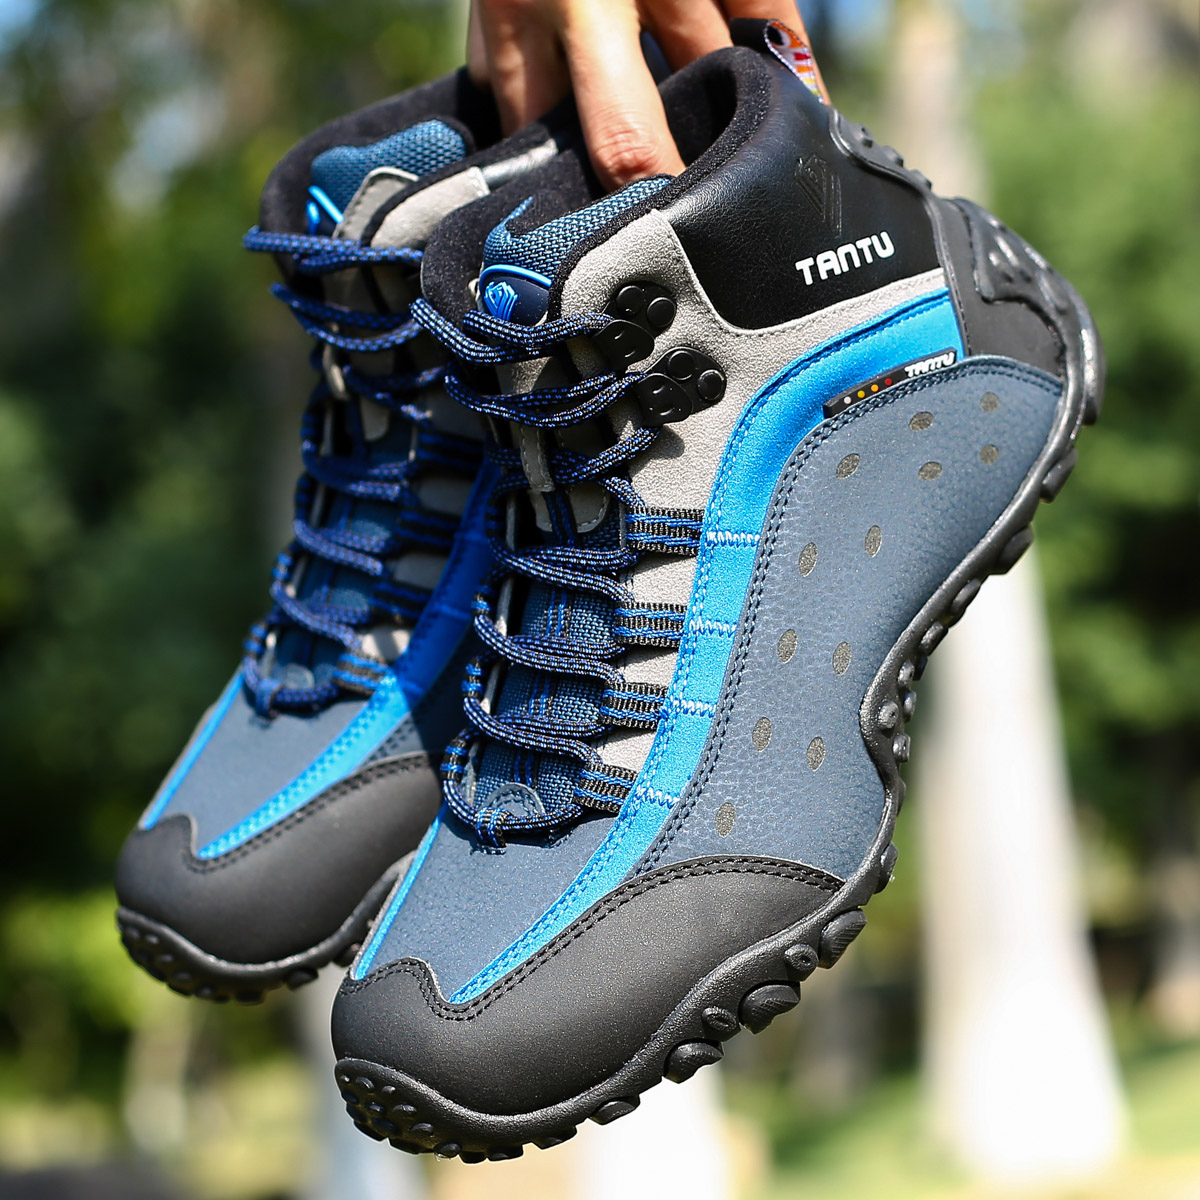 Bravover New Autumn Winter High Boots Outdoor Shoes Men Leather Shoes Sports Climbing Fishing Hunting Shoes mulinsen new arrive 2017 autumn winter warm high climbing shoes men